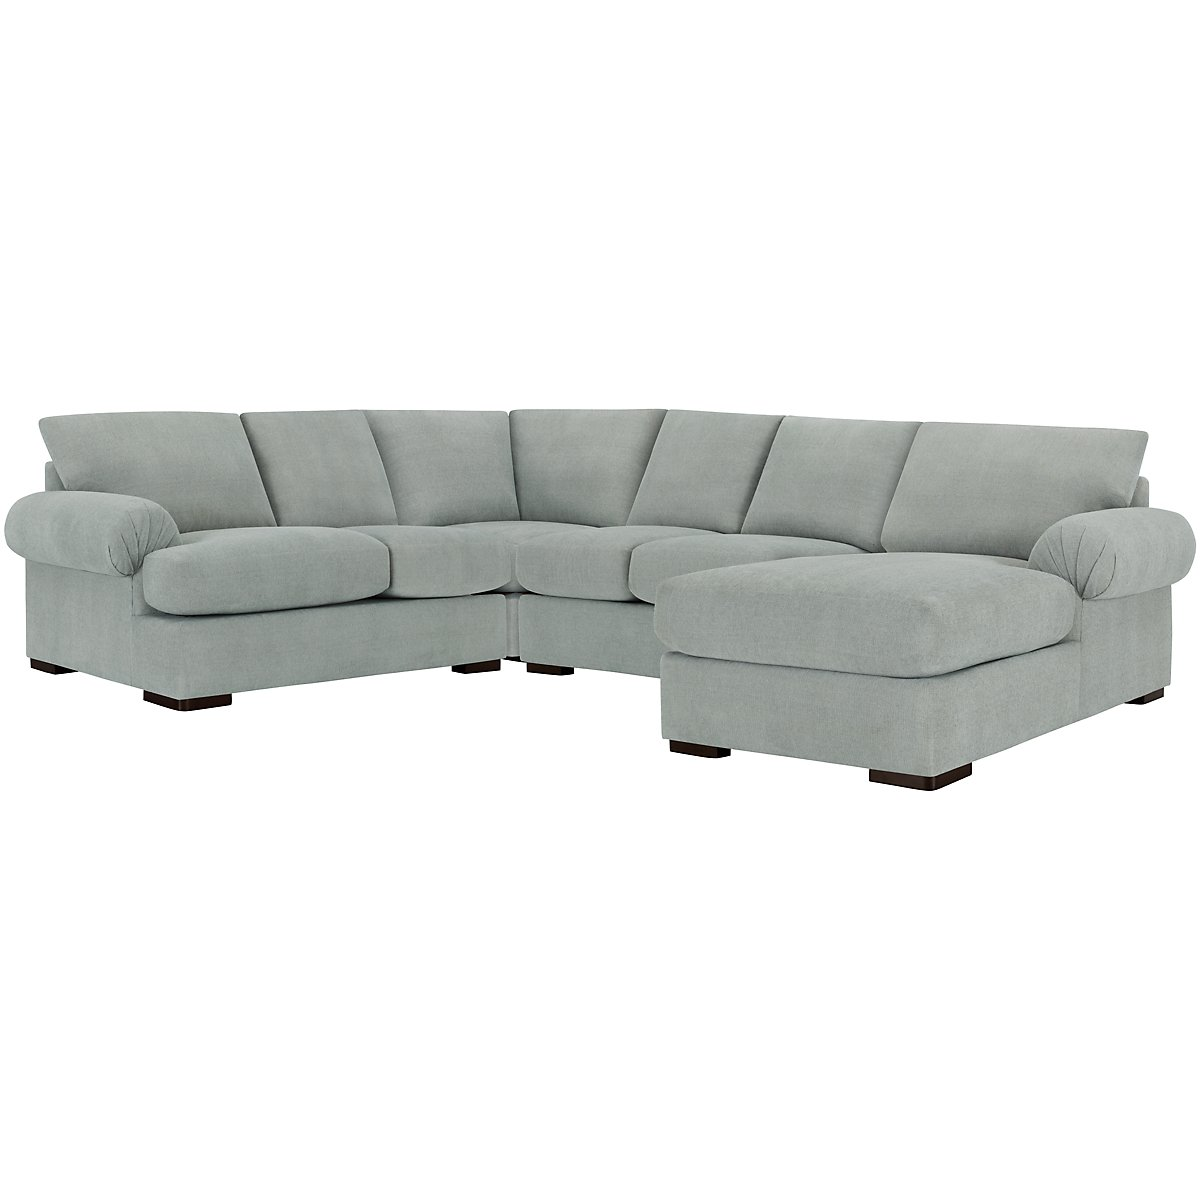 Belair Light Blue Fabric Medium Right Chaise Sectional